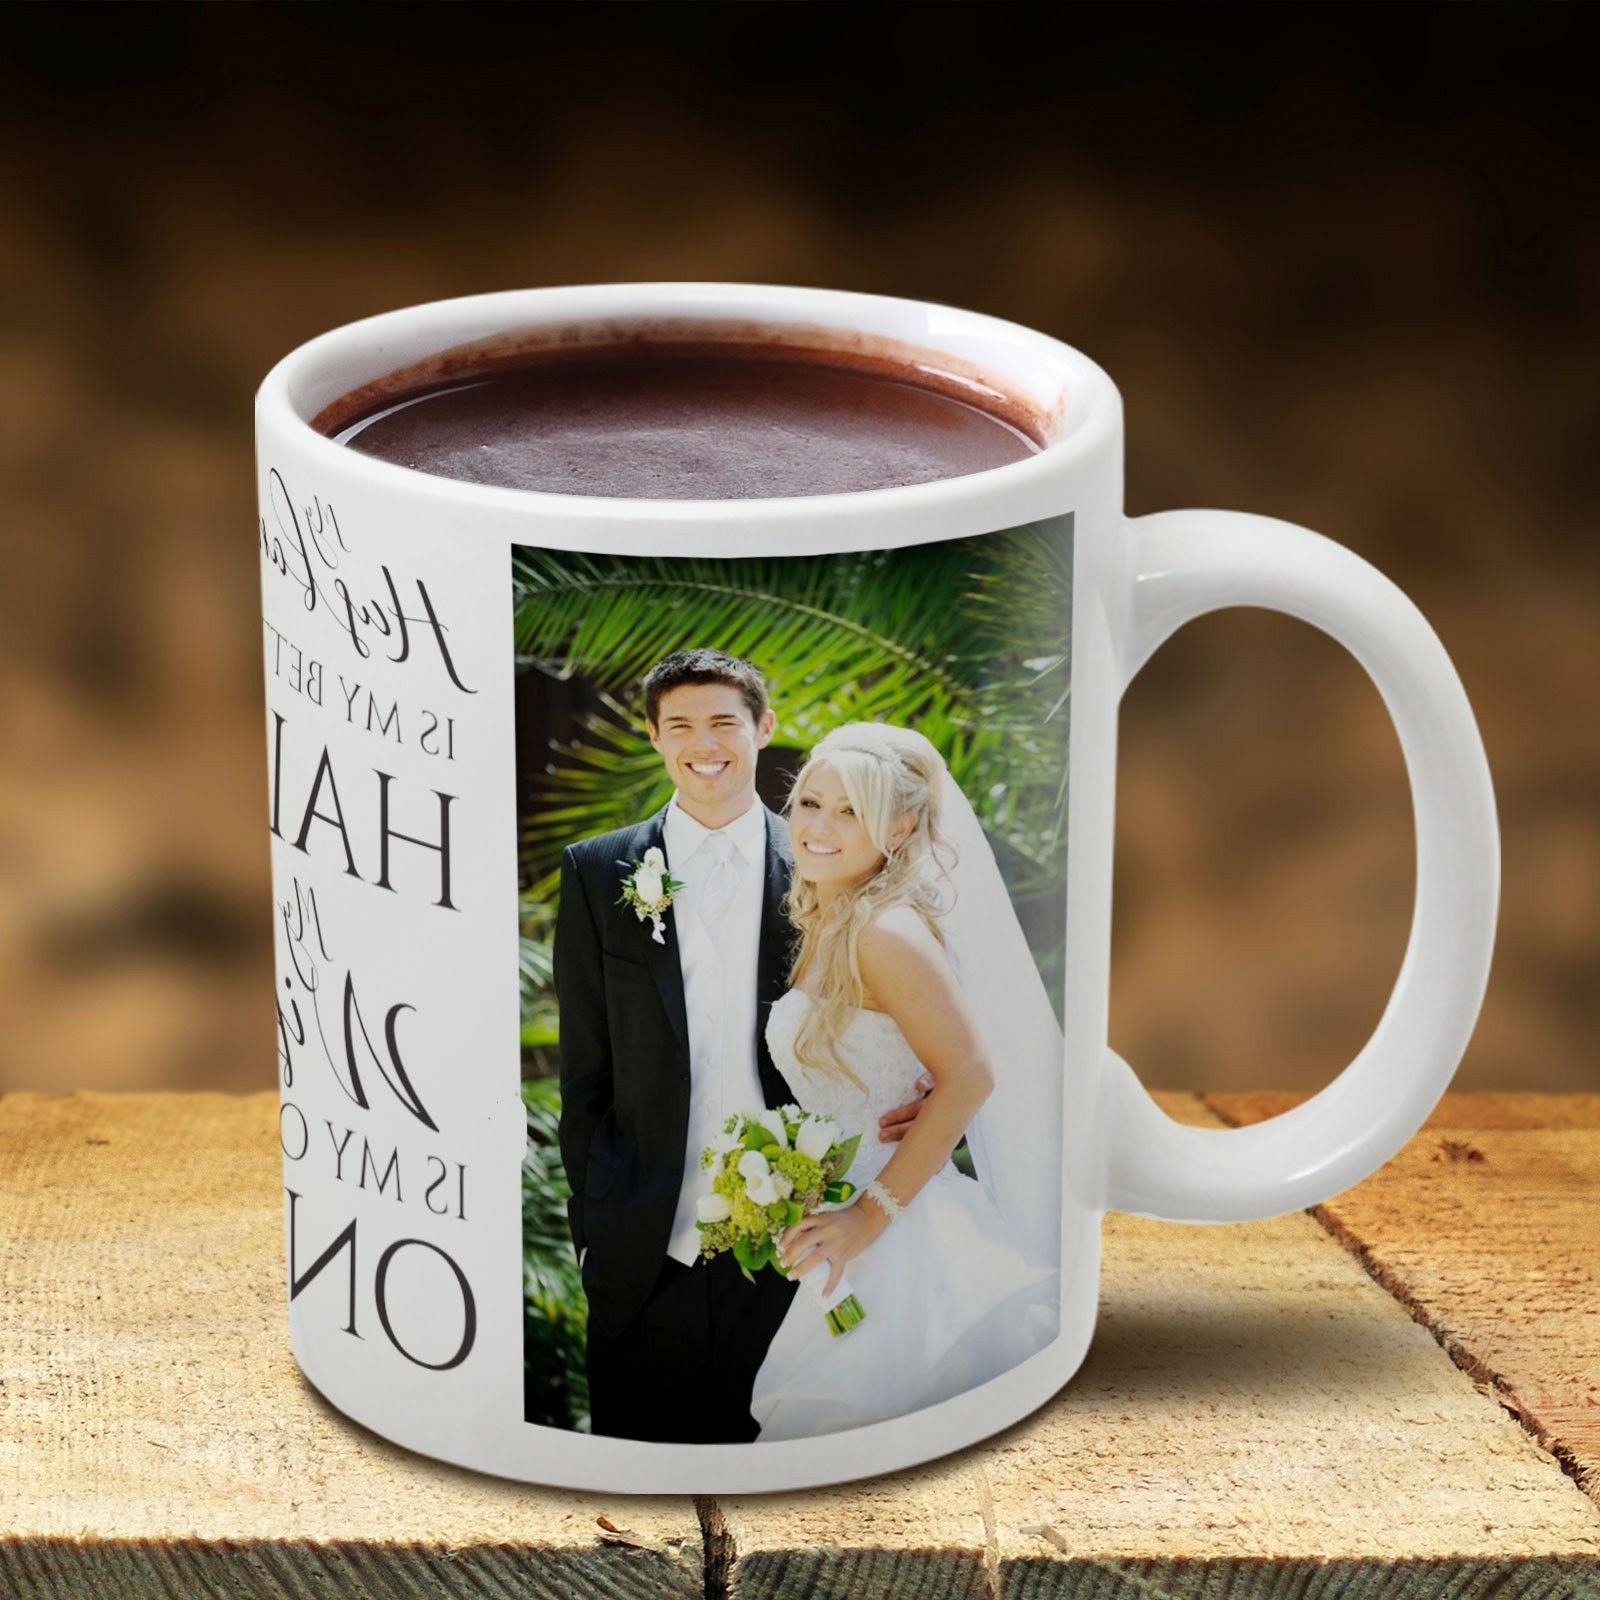 Custom Photo Mug Create a Personalized Gift with your Own Ph